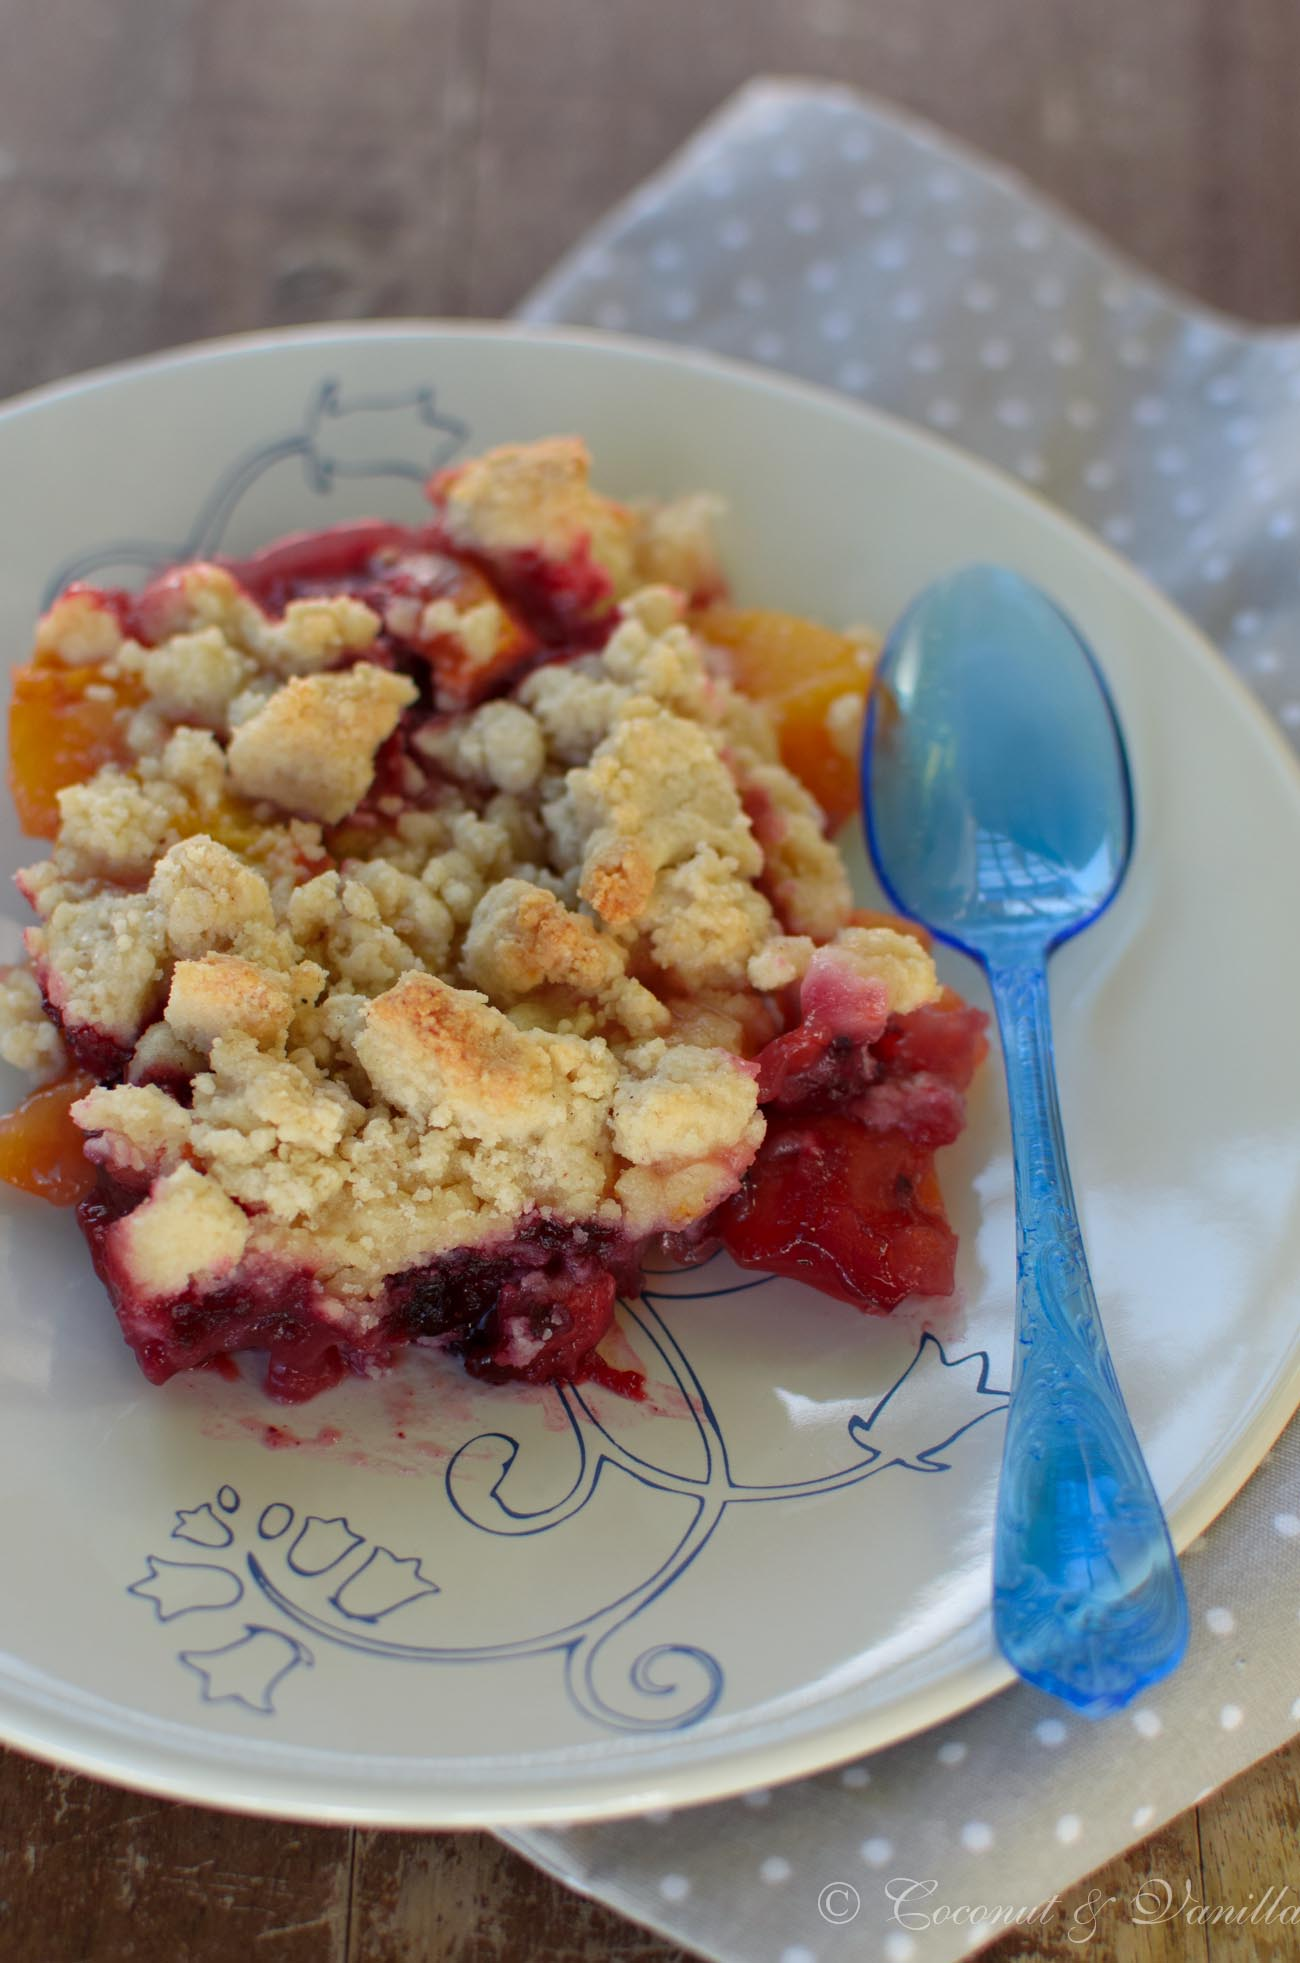 Peach Blackberry Crumble [gluten-free]